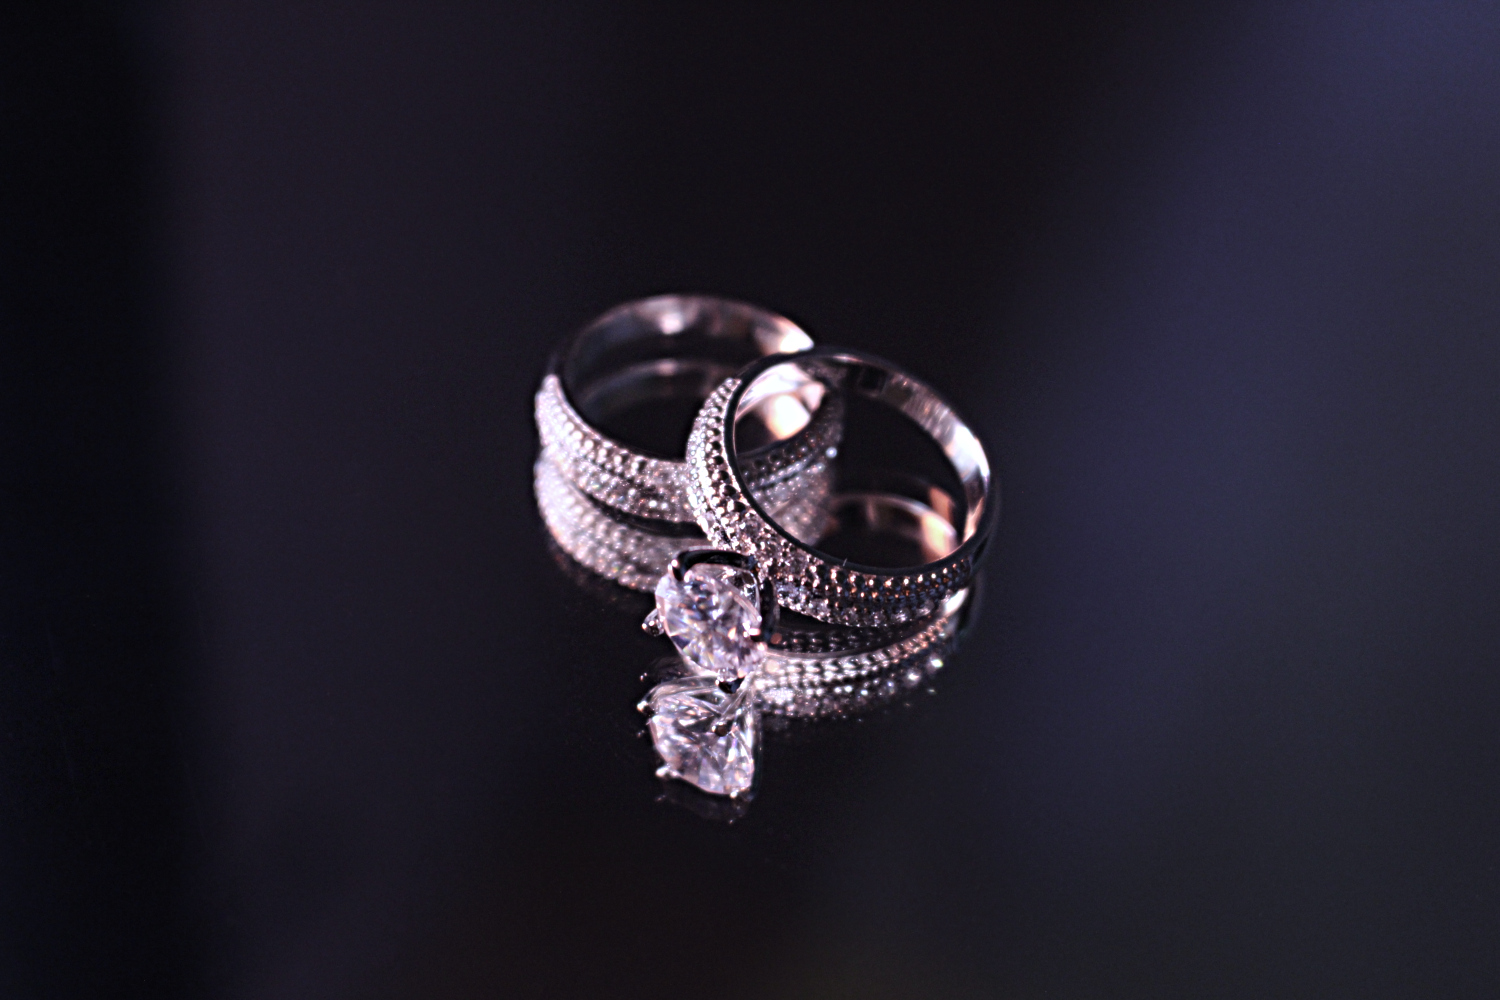 silver jewelry in close up